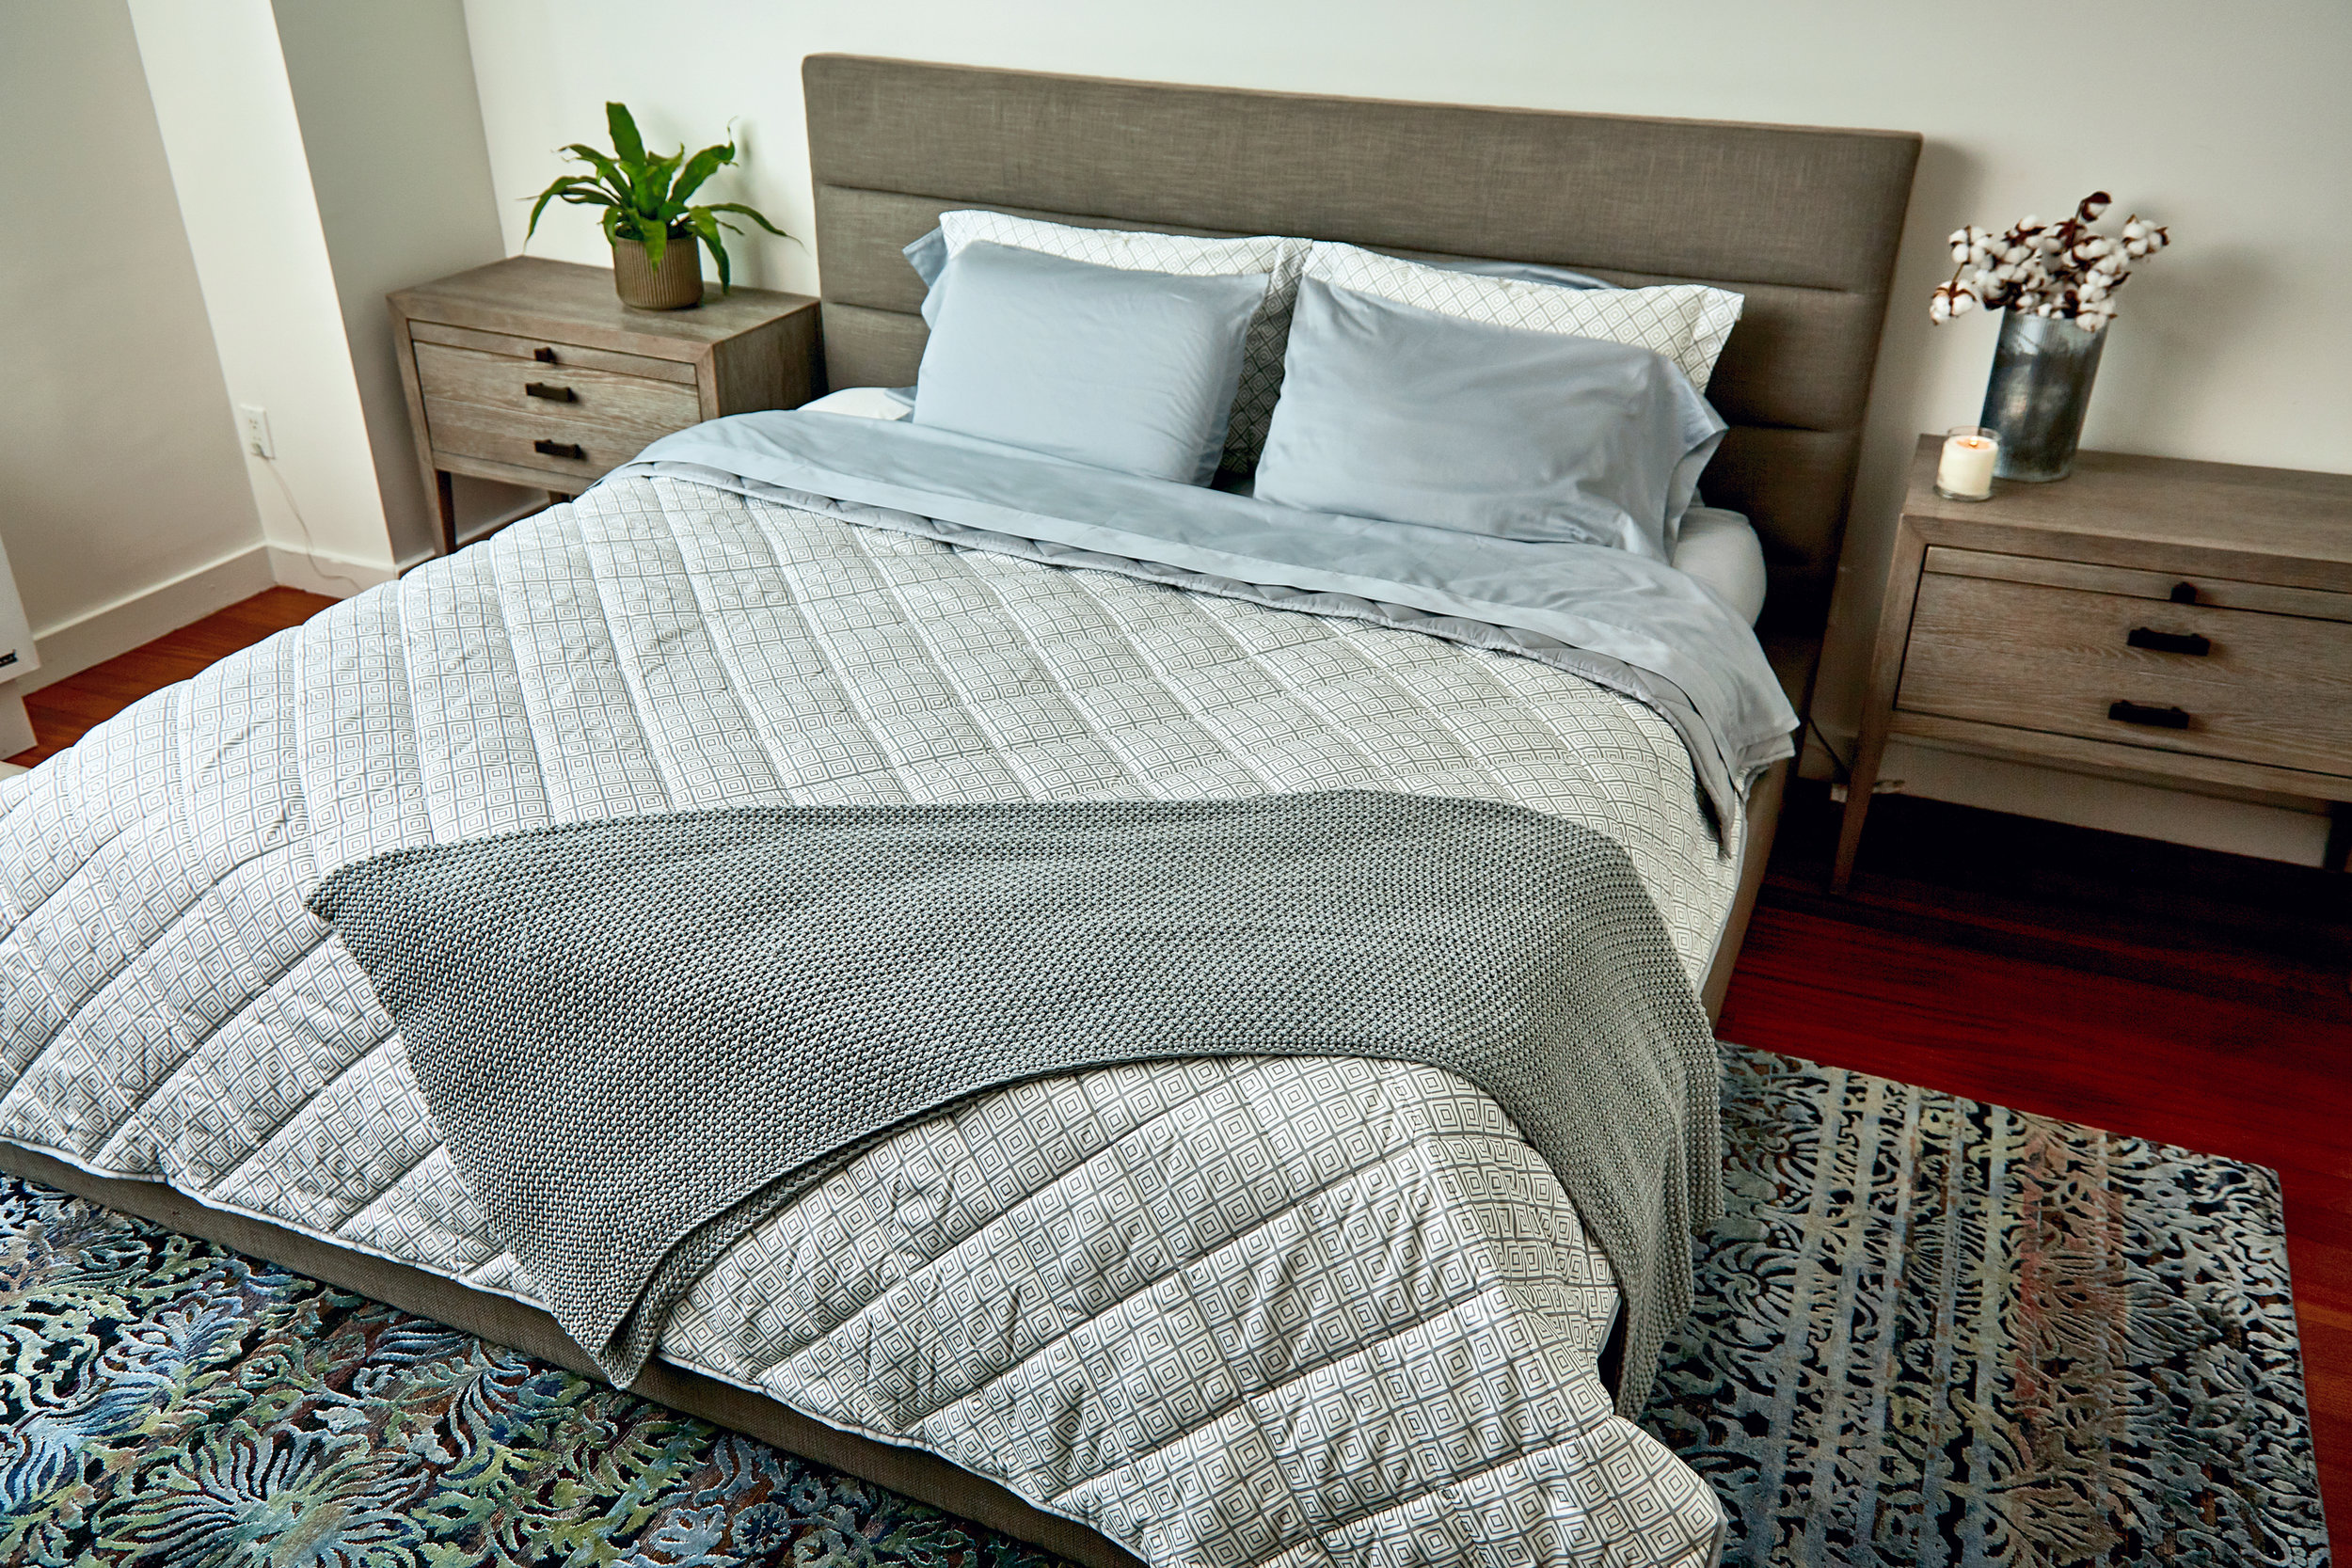 Farm-to-Home_Stone-soul-bed0617_xret.jpg